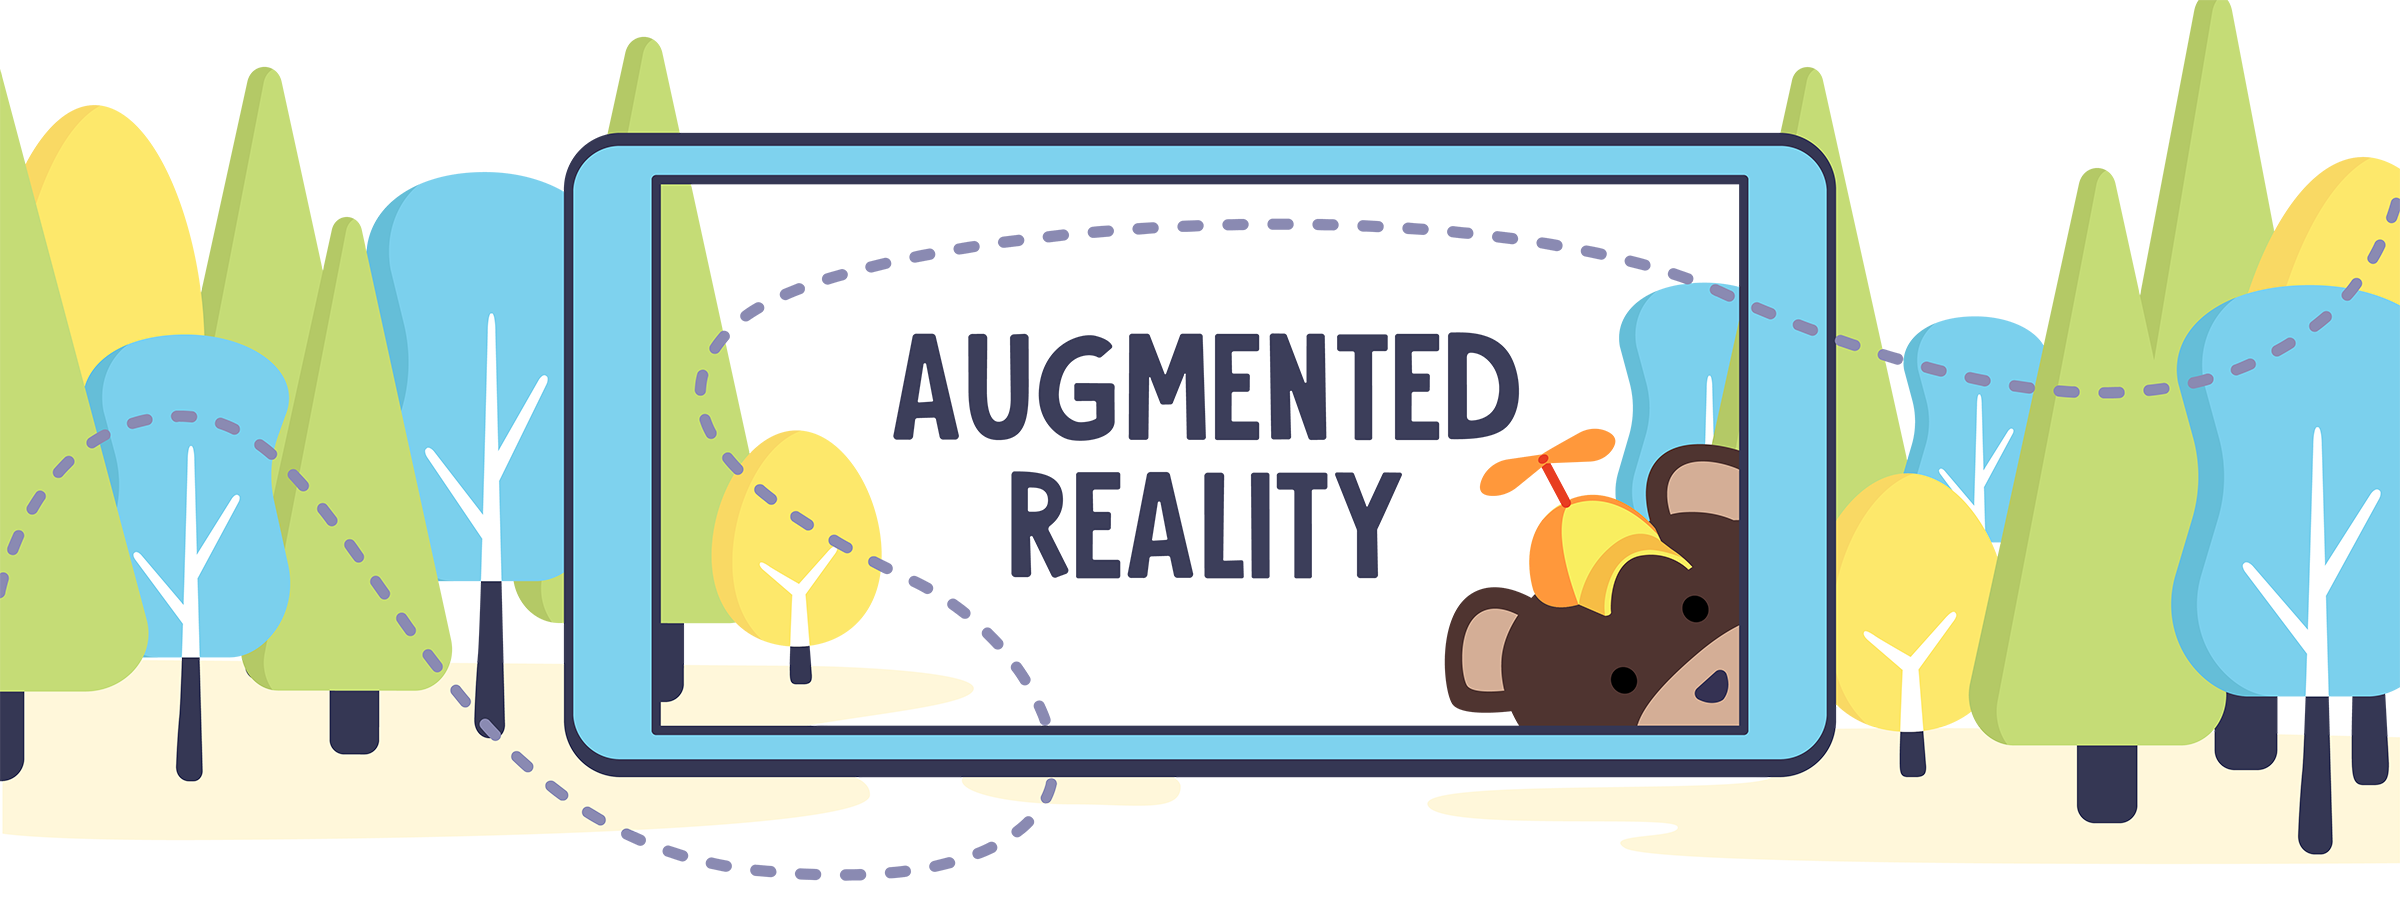 augmented reality header